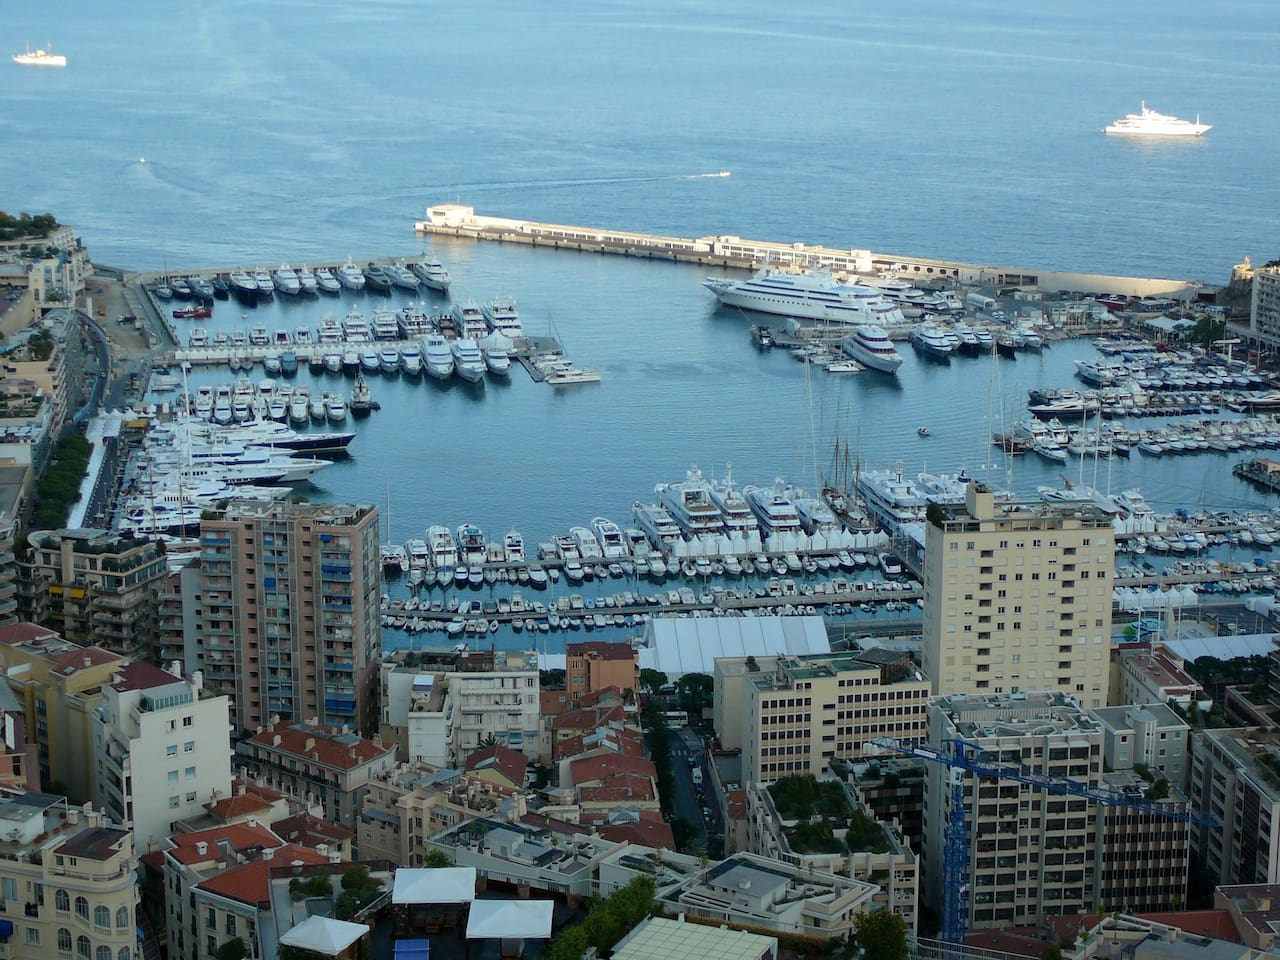 Spectacular view of Port Hercule, the main harbour of Monaco